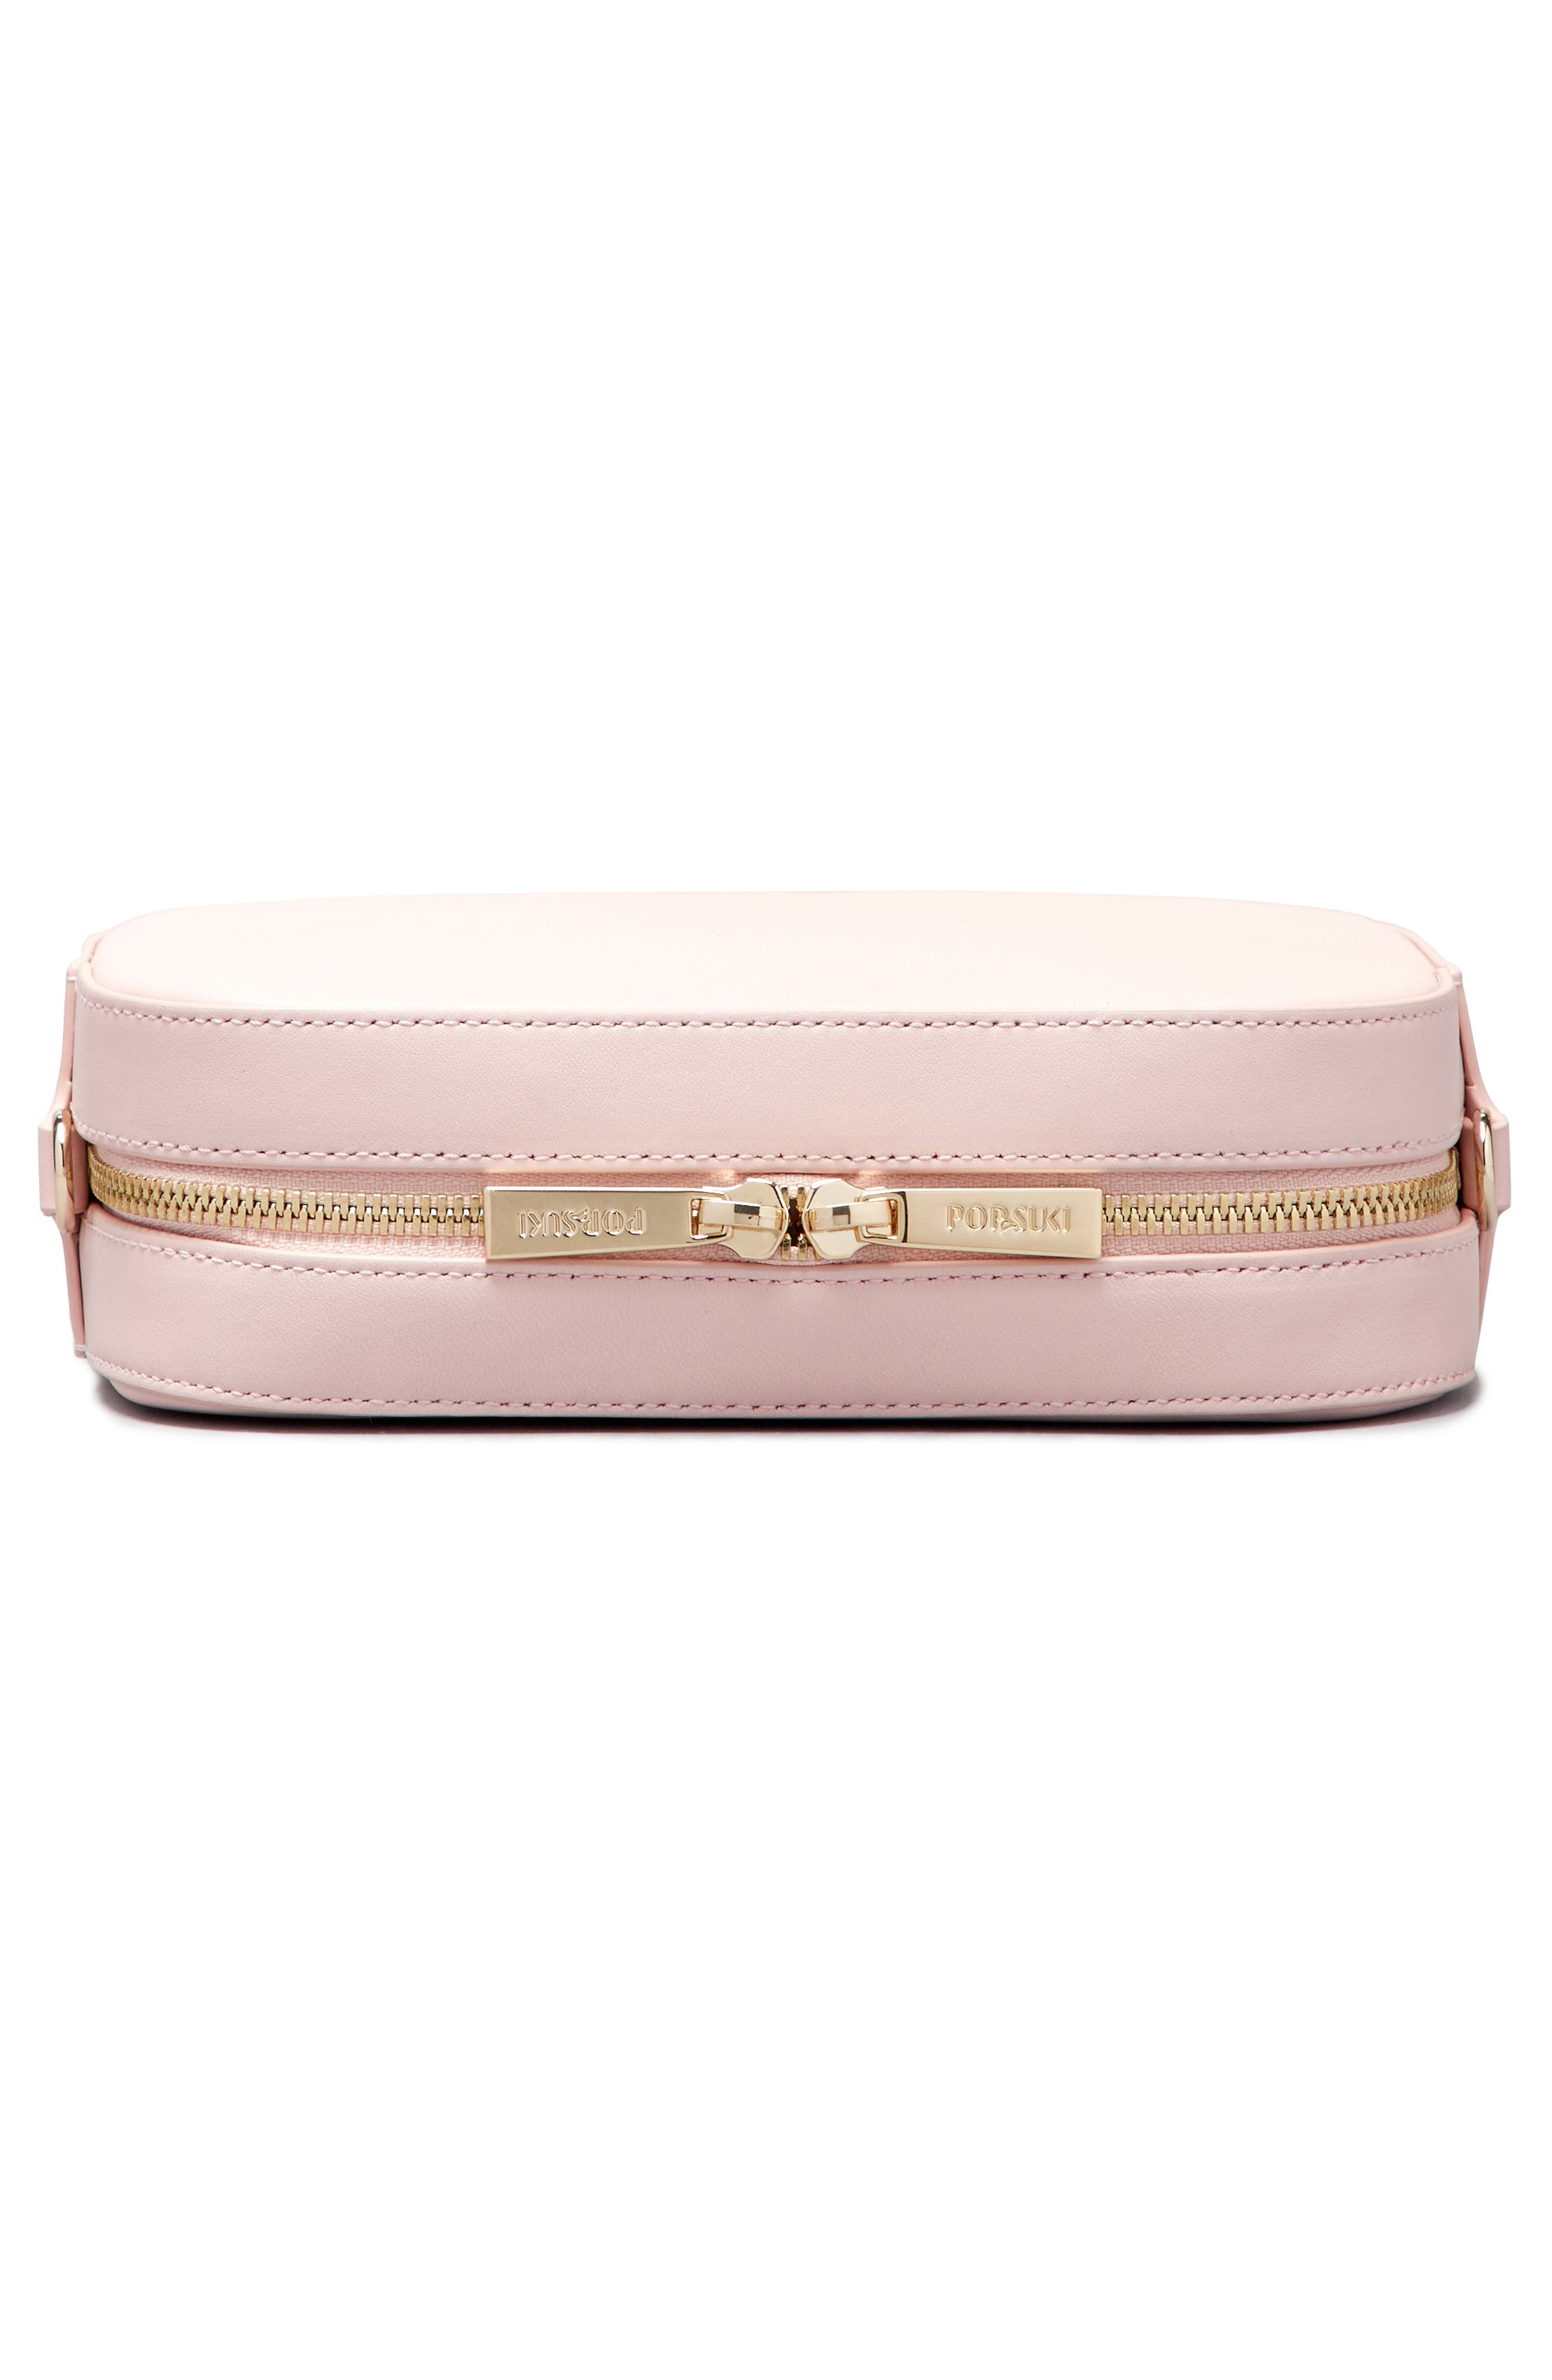 Personalized Leather Camera Bag,                             Alternate thumbnail 5, color,                             Cotton Candy/ White